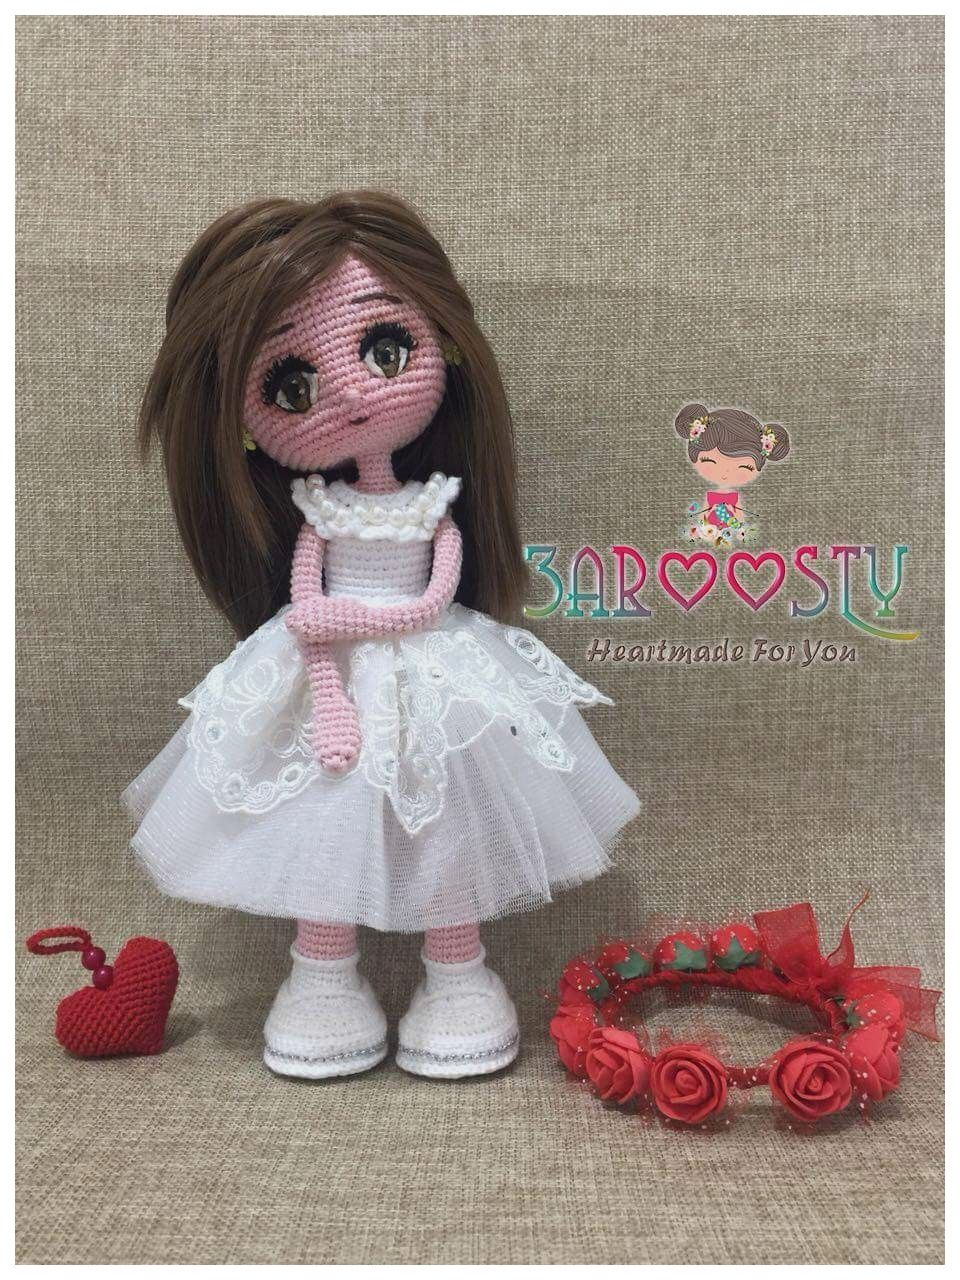 Wedding Dolls Amigurumi Crochet – Snacksies Handicraft | 1280x960